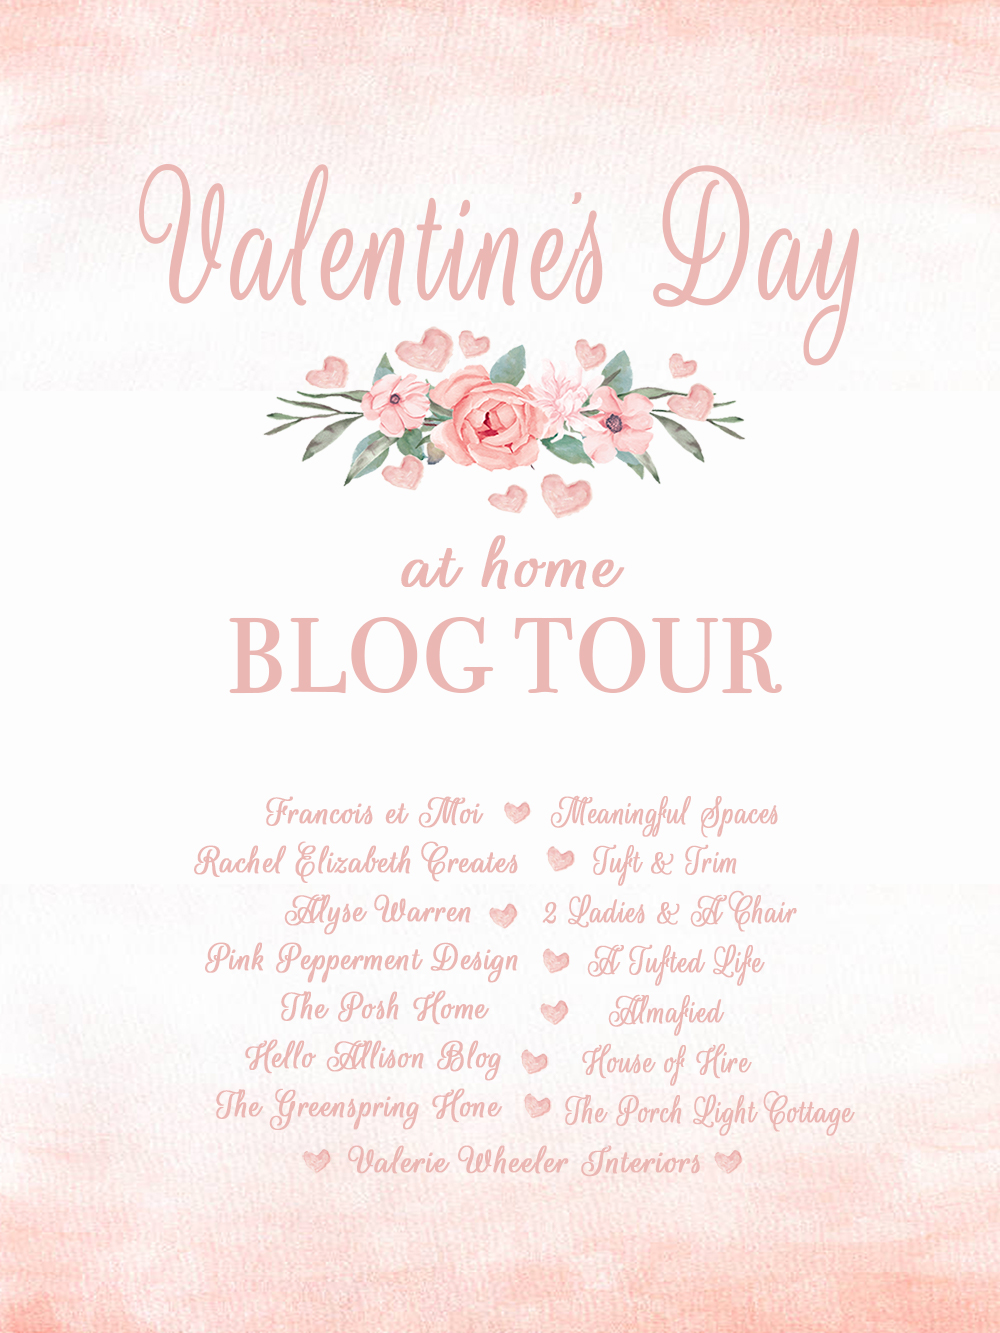 Valentines-Day-at-Home-Blog-Tour